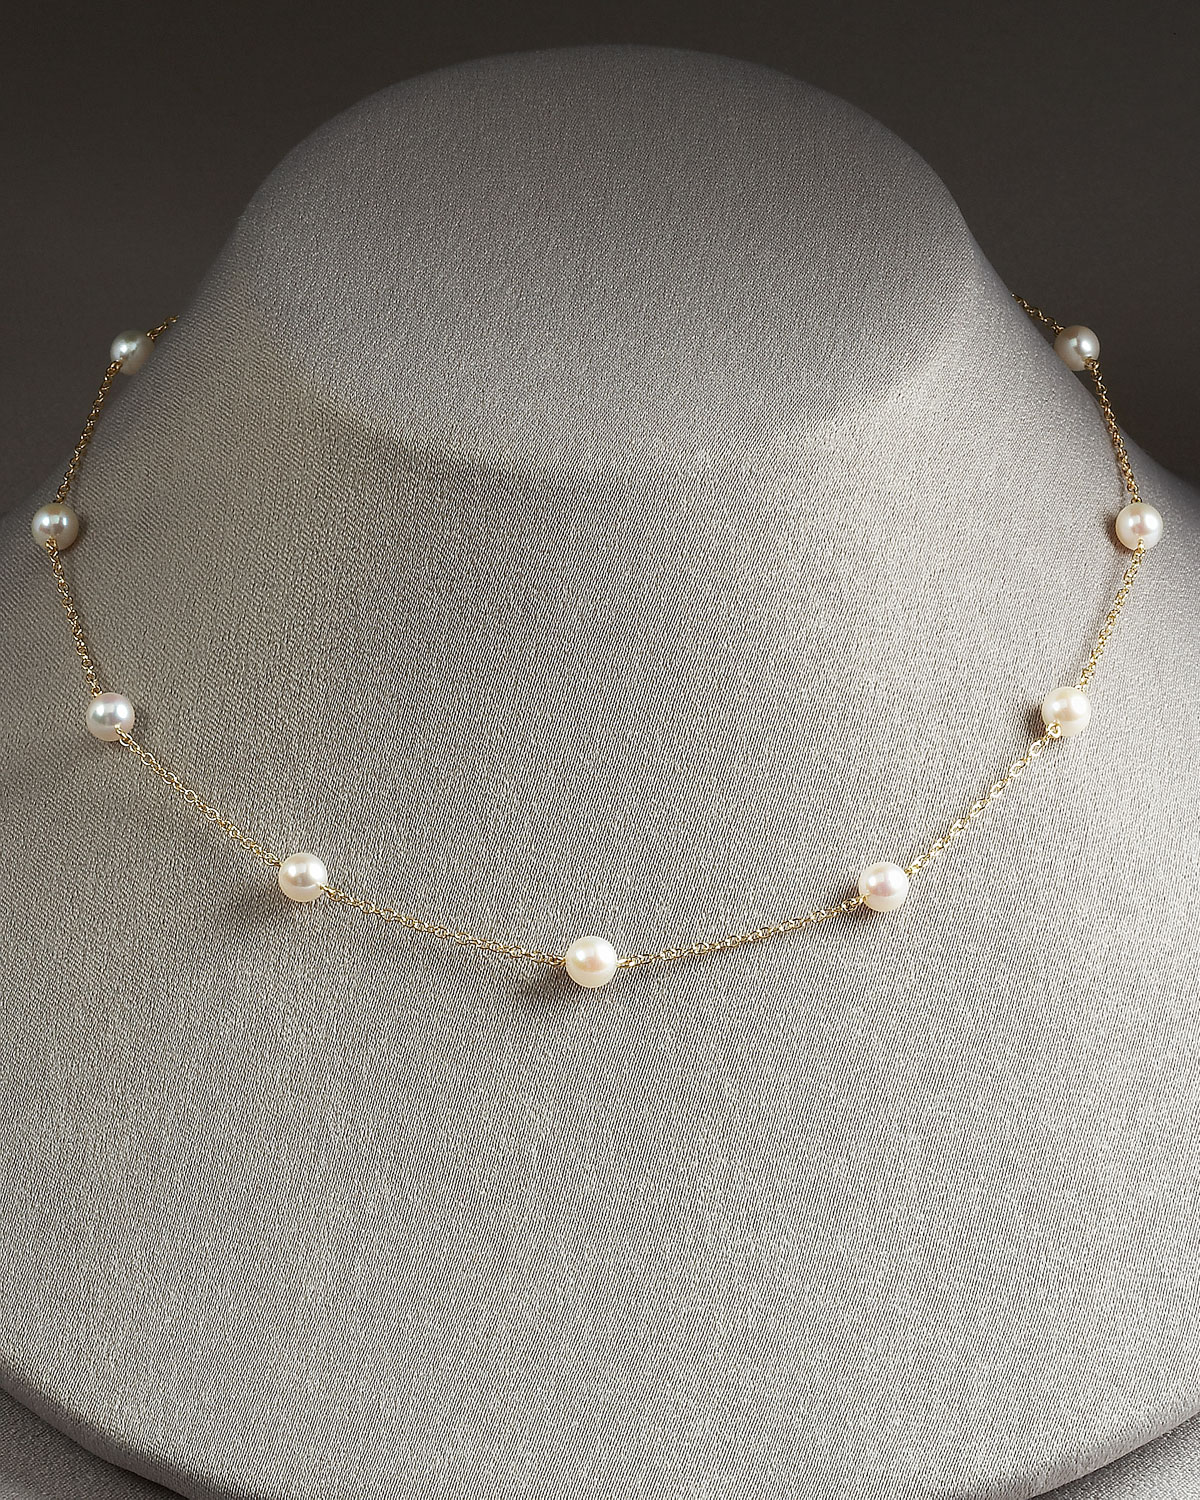 ab5bd66578a51 Lyst - Mikimoto Akoya Pearl Necklace in White